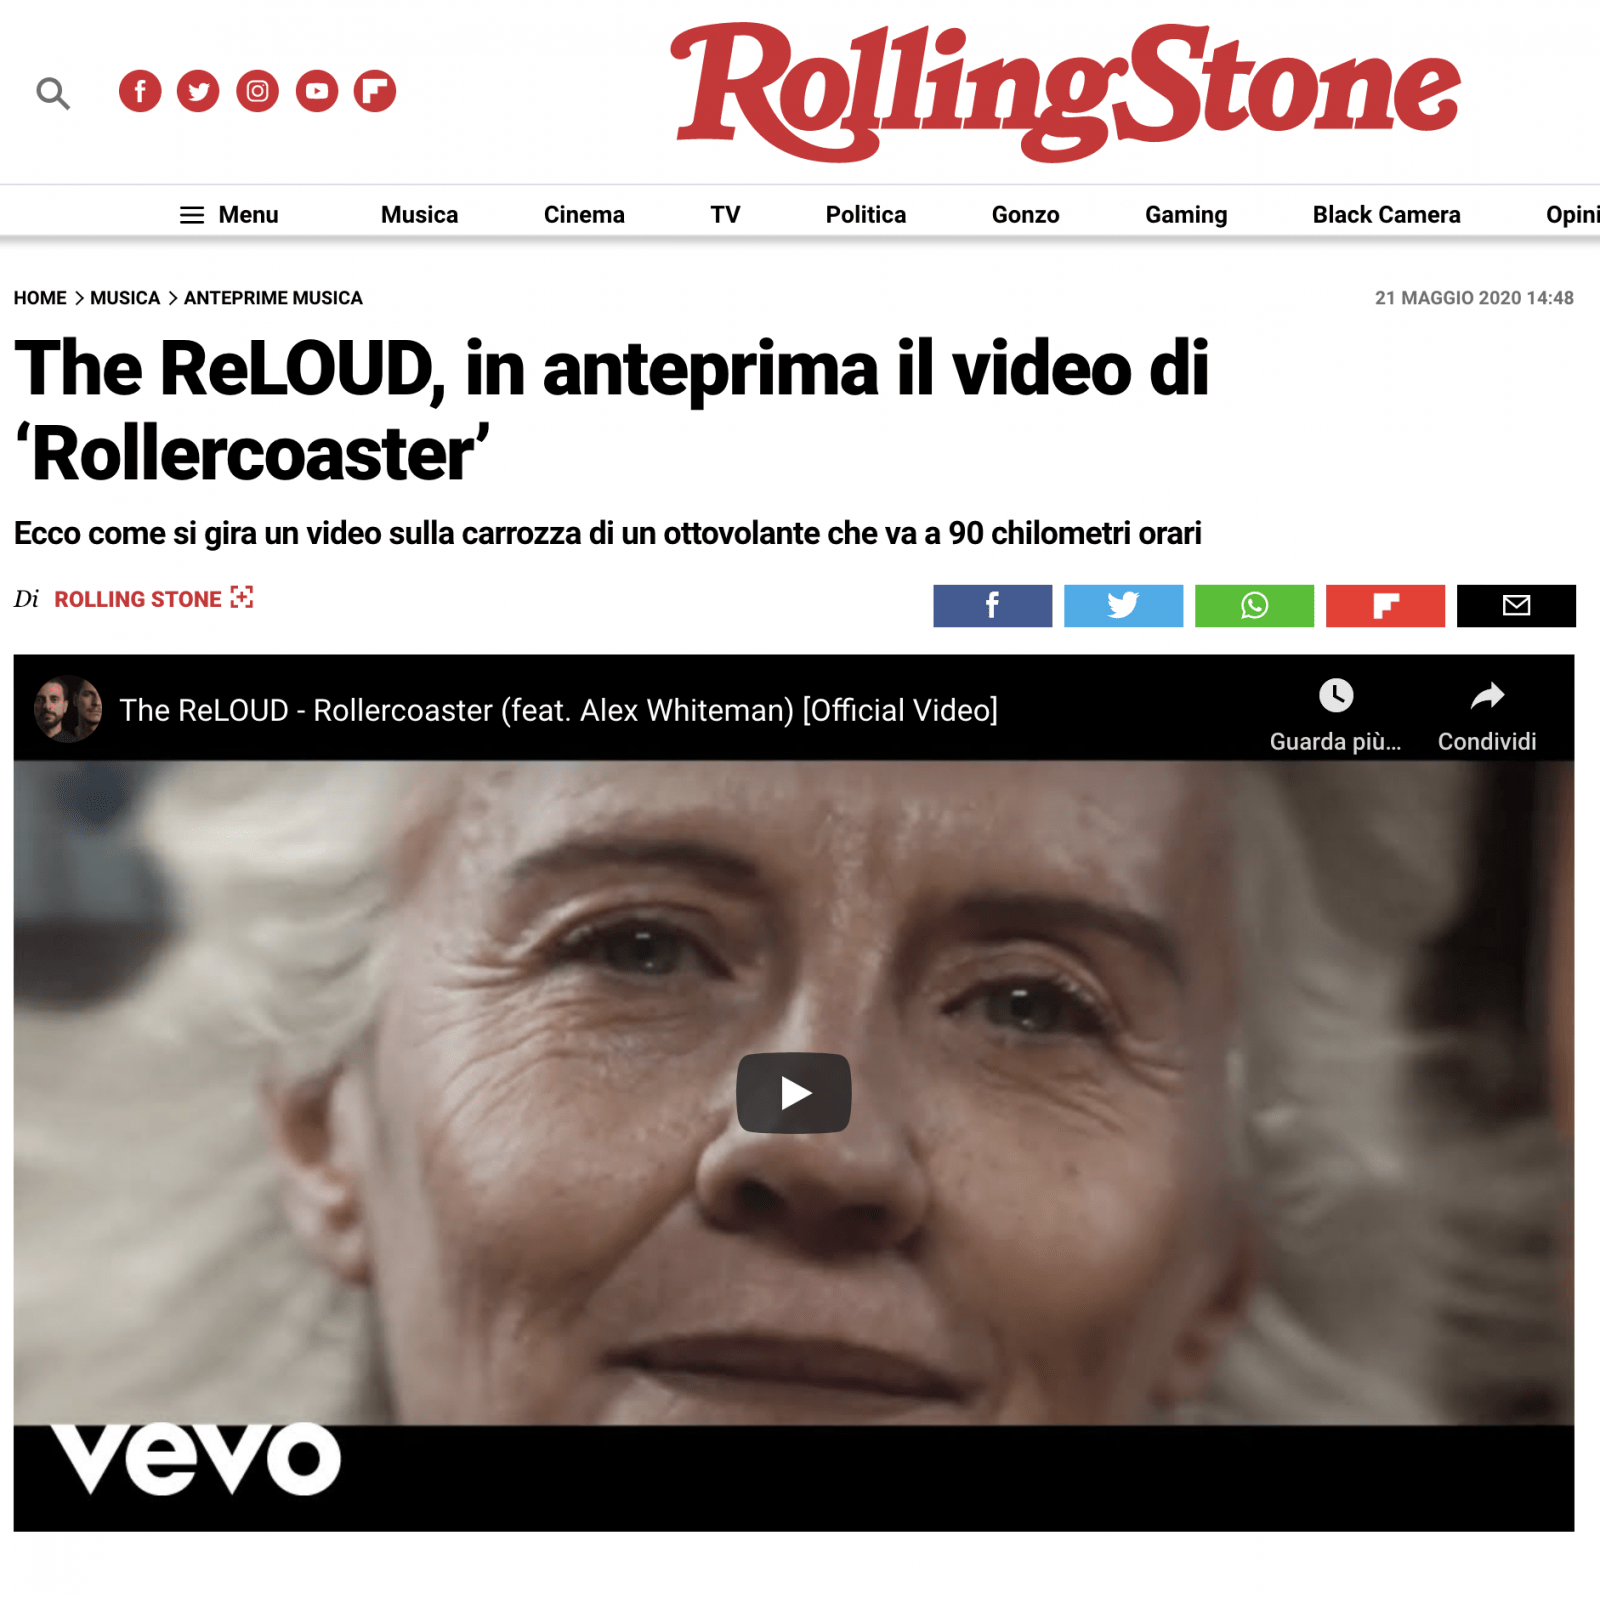 The ReLOUD su Rollingstone